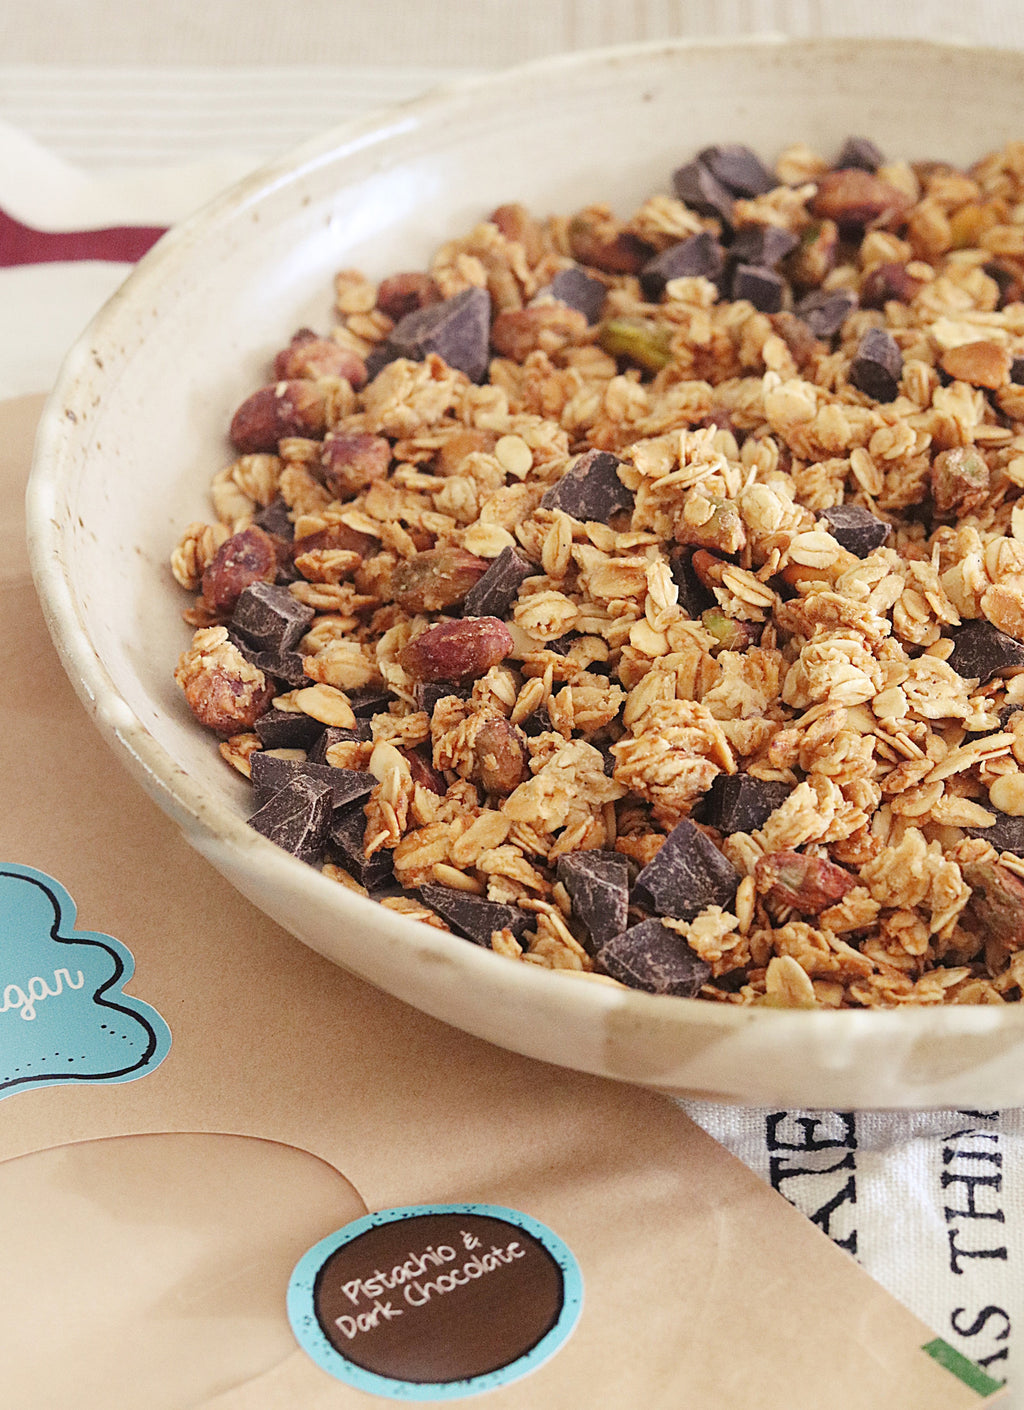 Pistachio & Dark Chocolate Granola